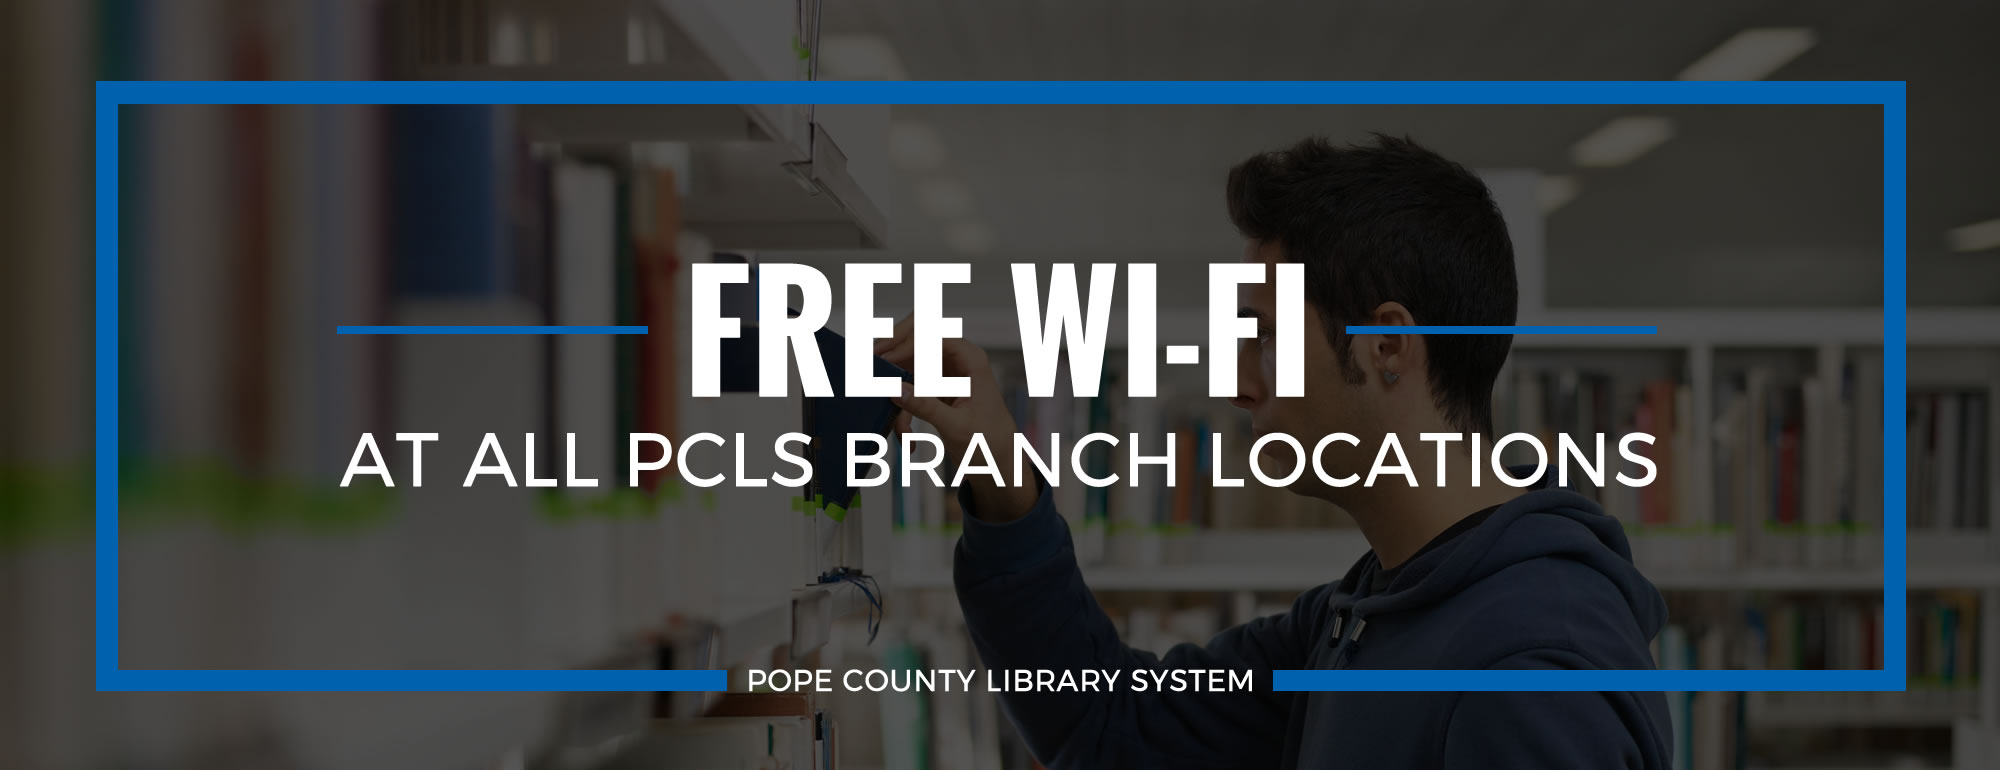 Pope County Library System